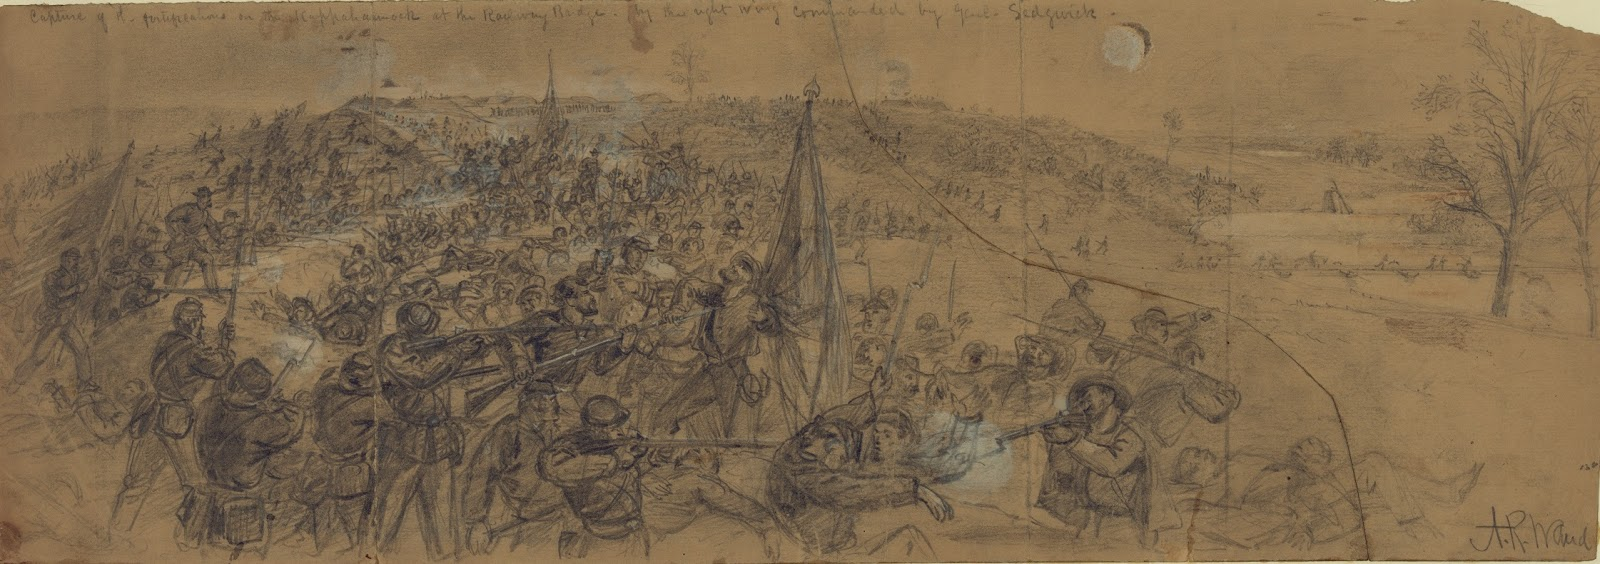 this sketch by alfred waud depicts the union troops from david russell s 1st division 6th corps overrunning the confederate earthworks